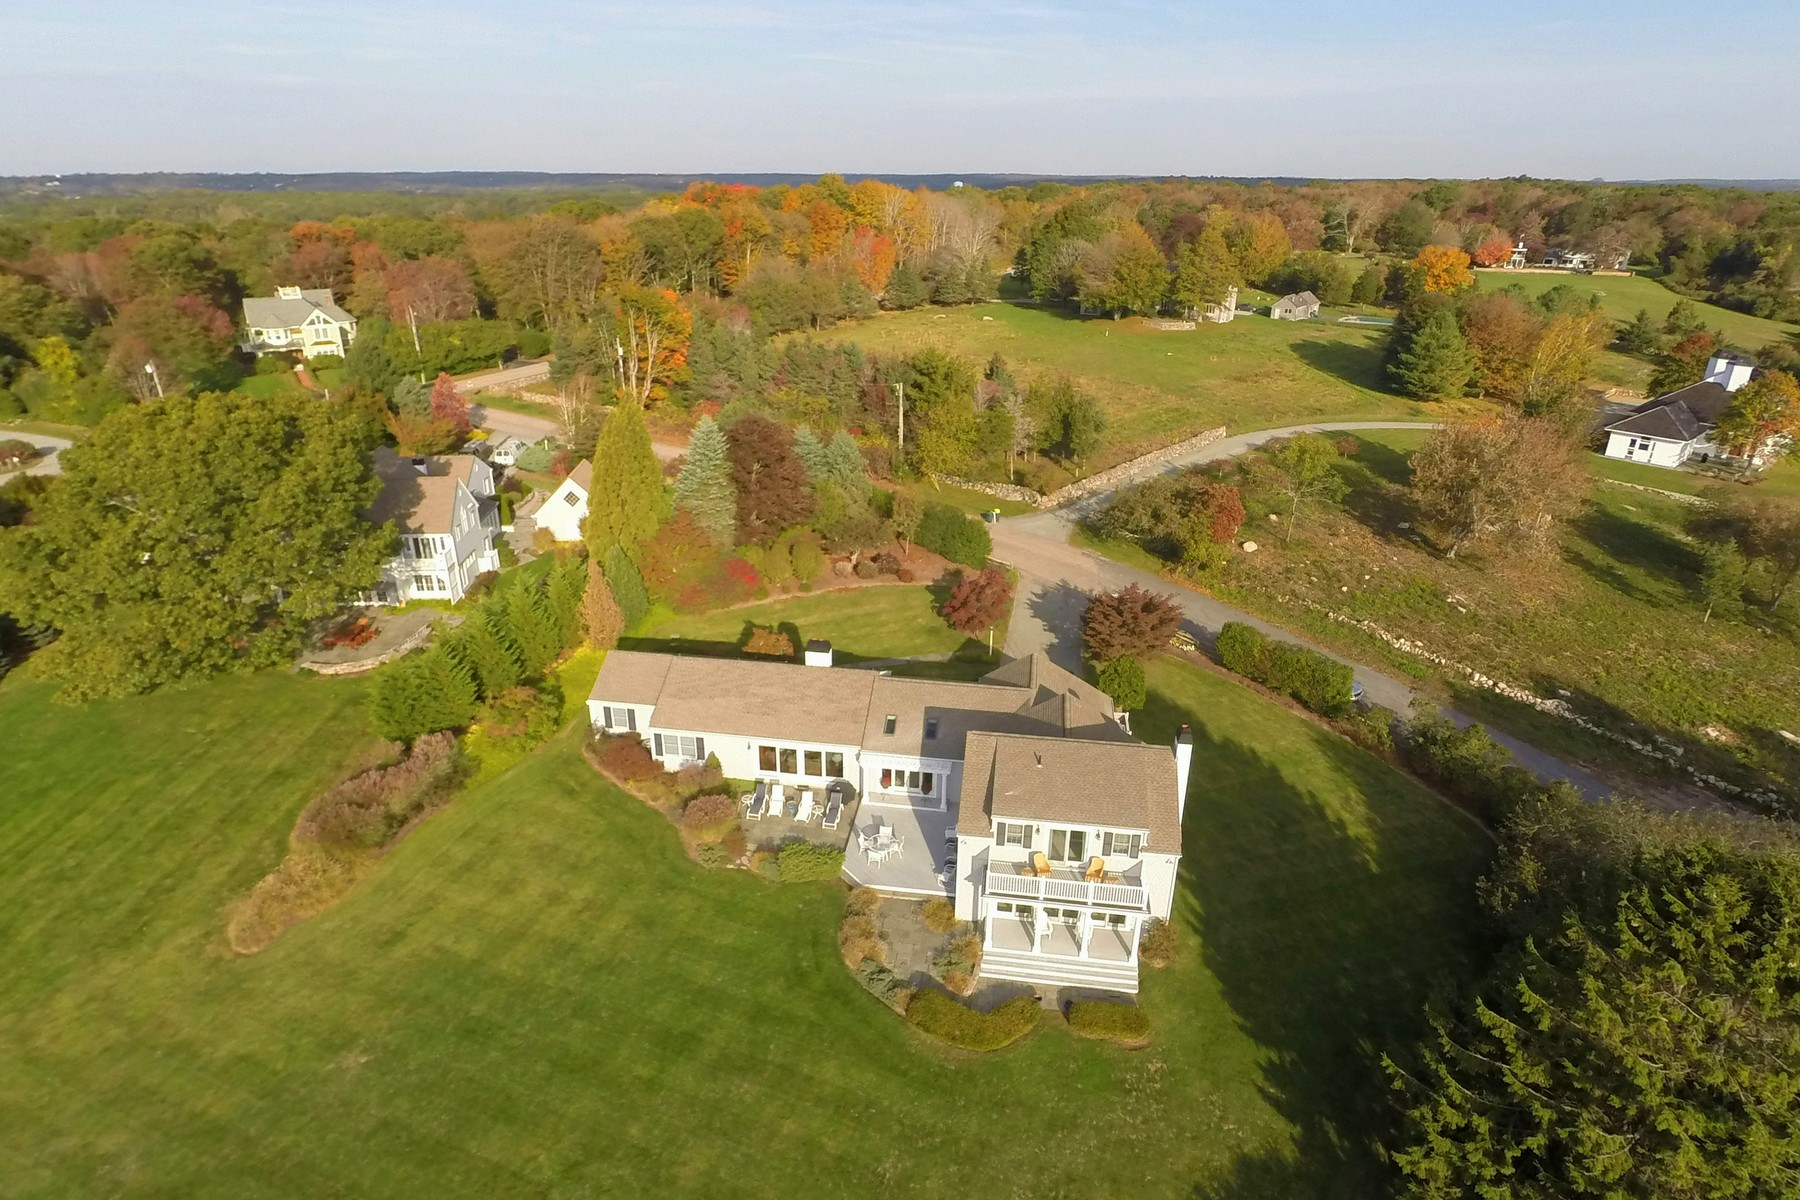 Property For Sale at Views of Stonington Harbor